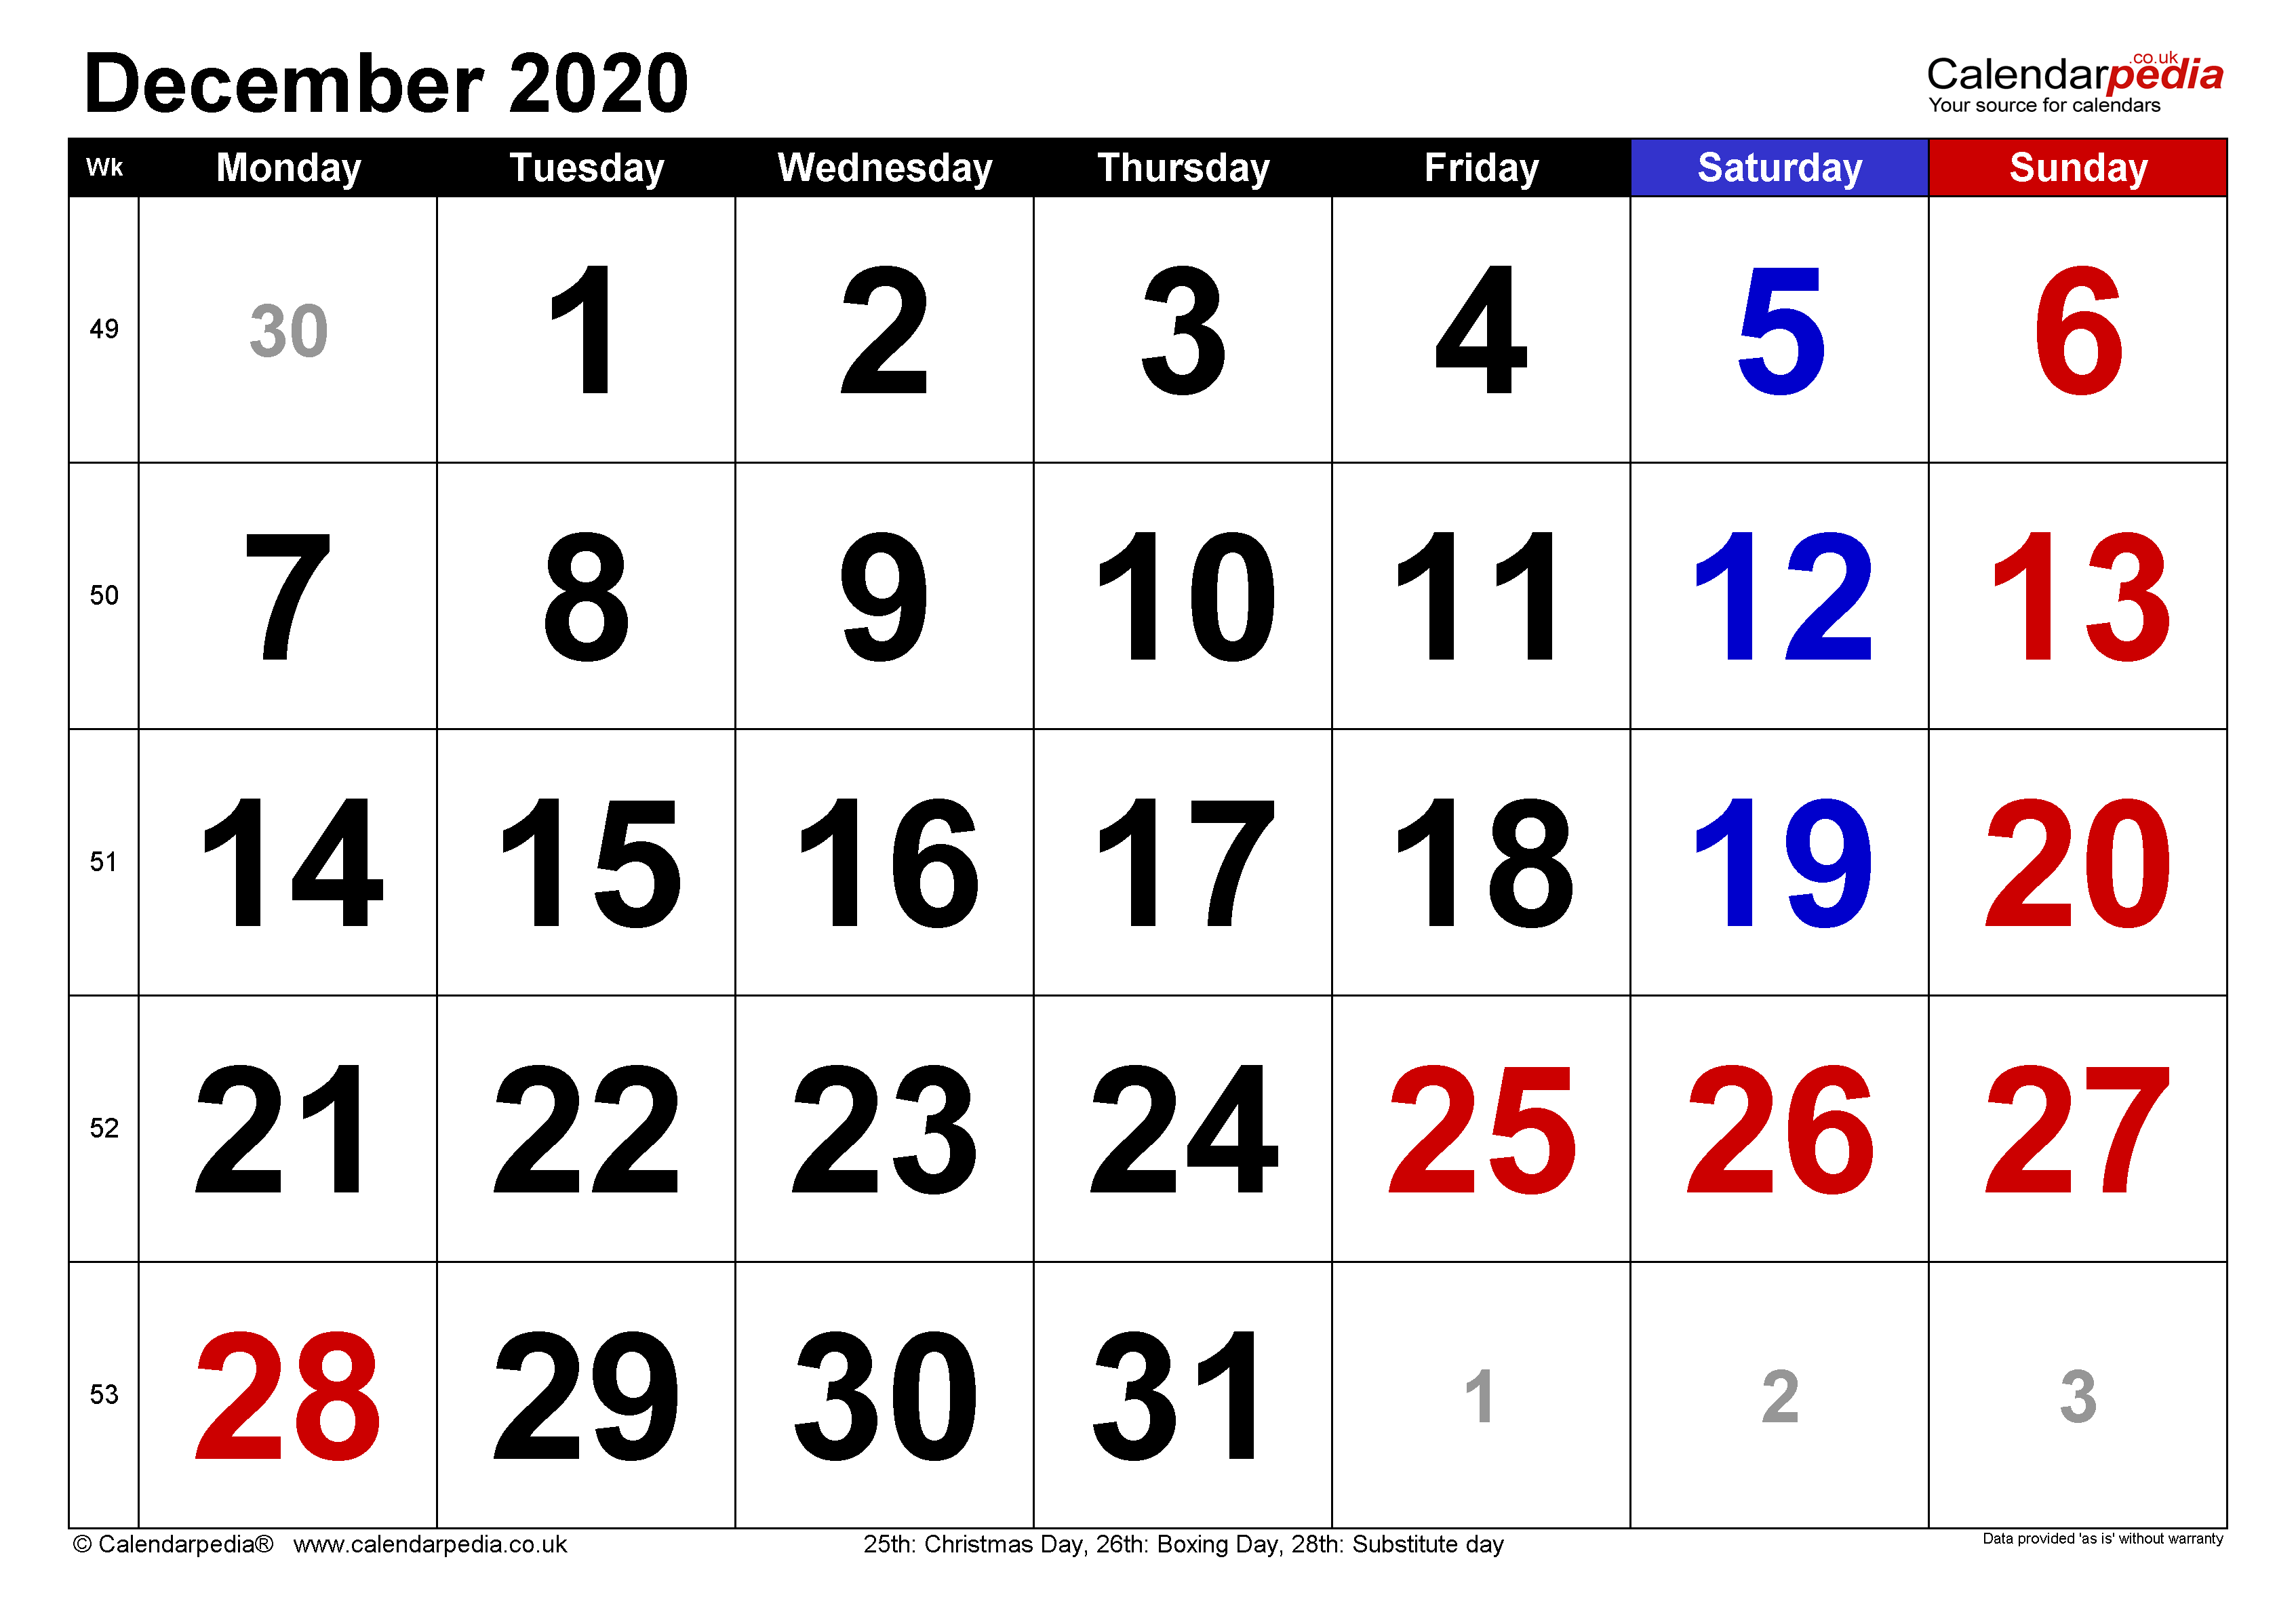 Calendar December 2020 UK with Excel, Word and PDF templates